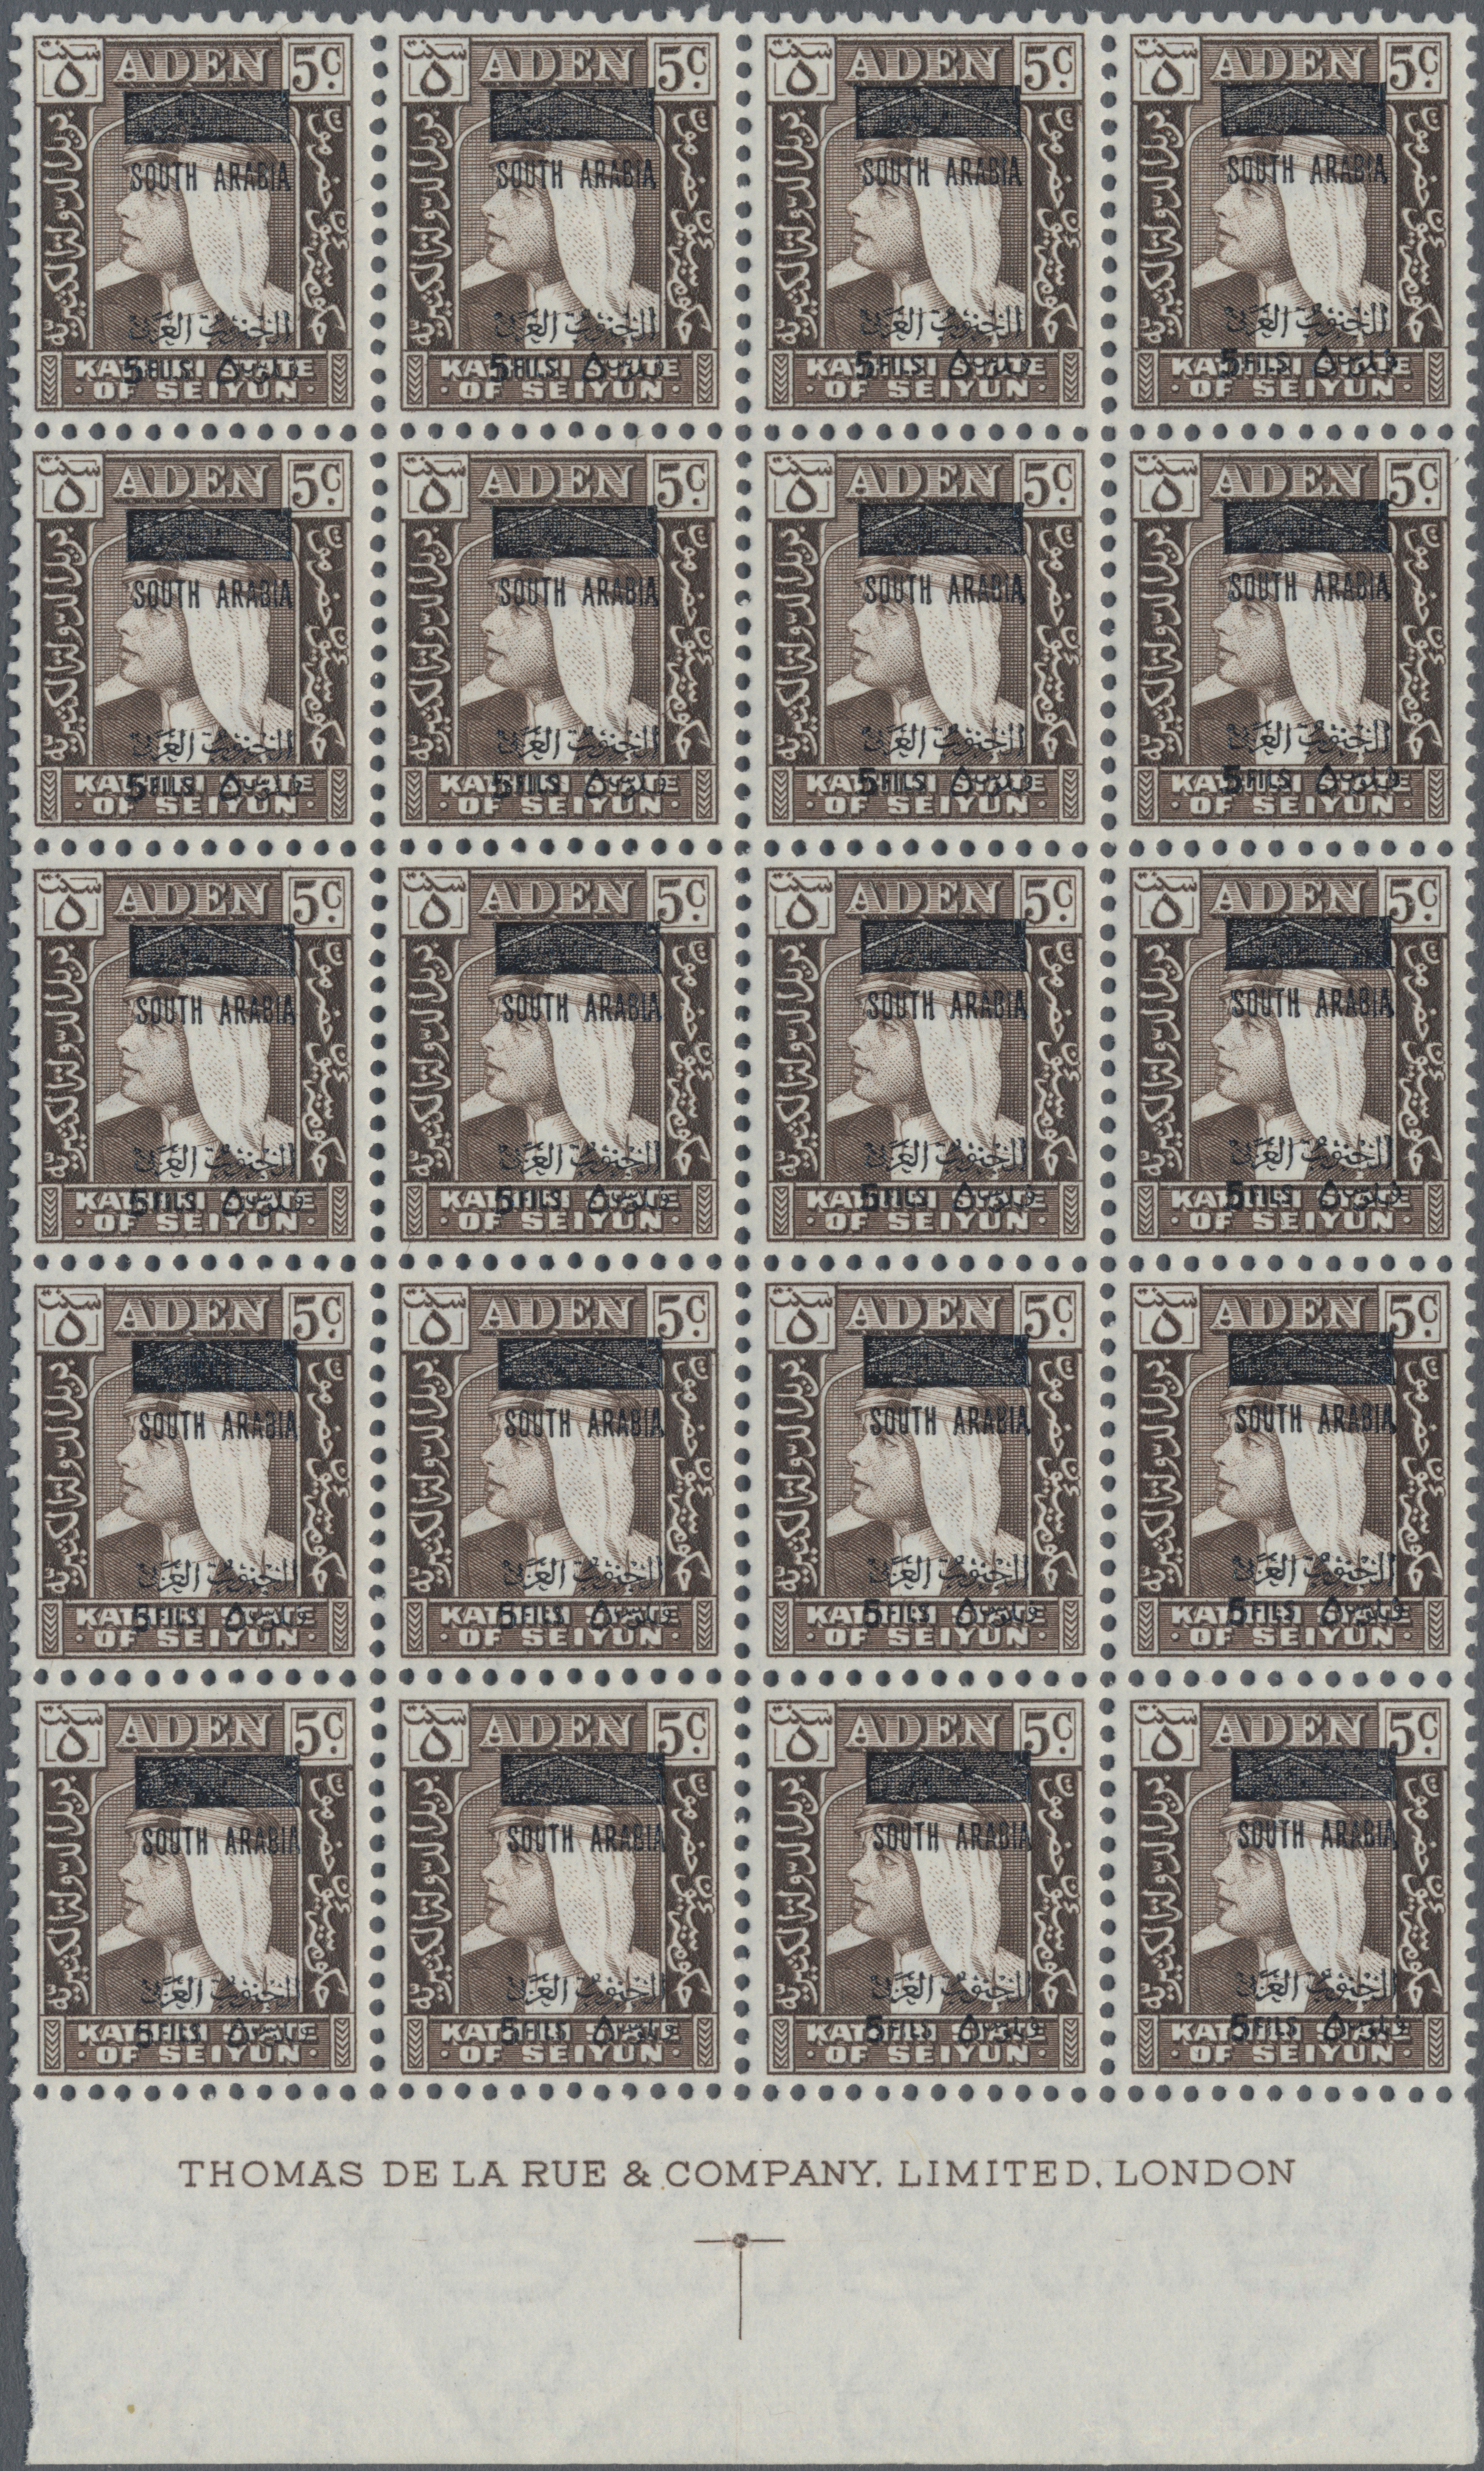 Lot 05003 - Aden - Kathiri State of Seiyun  -  Auktionshaus Christoph Gärtner GmbH & Co. KG Sale #49 Single lots Asia, Thematics, Oversea, Europe, Old German States, Third Reich, German Colonies and the Federal Republic of Germany